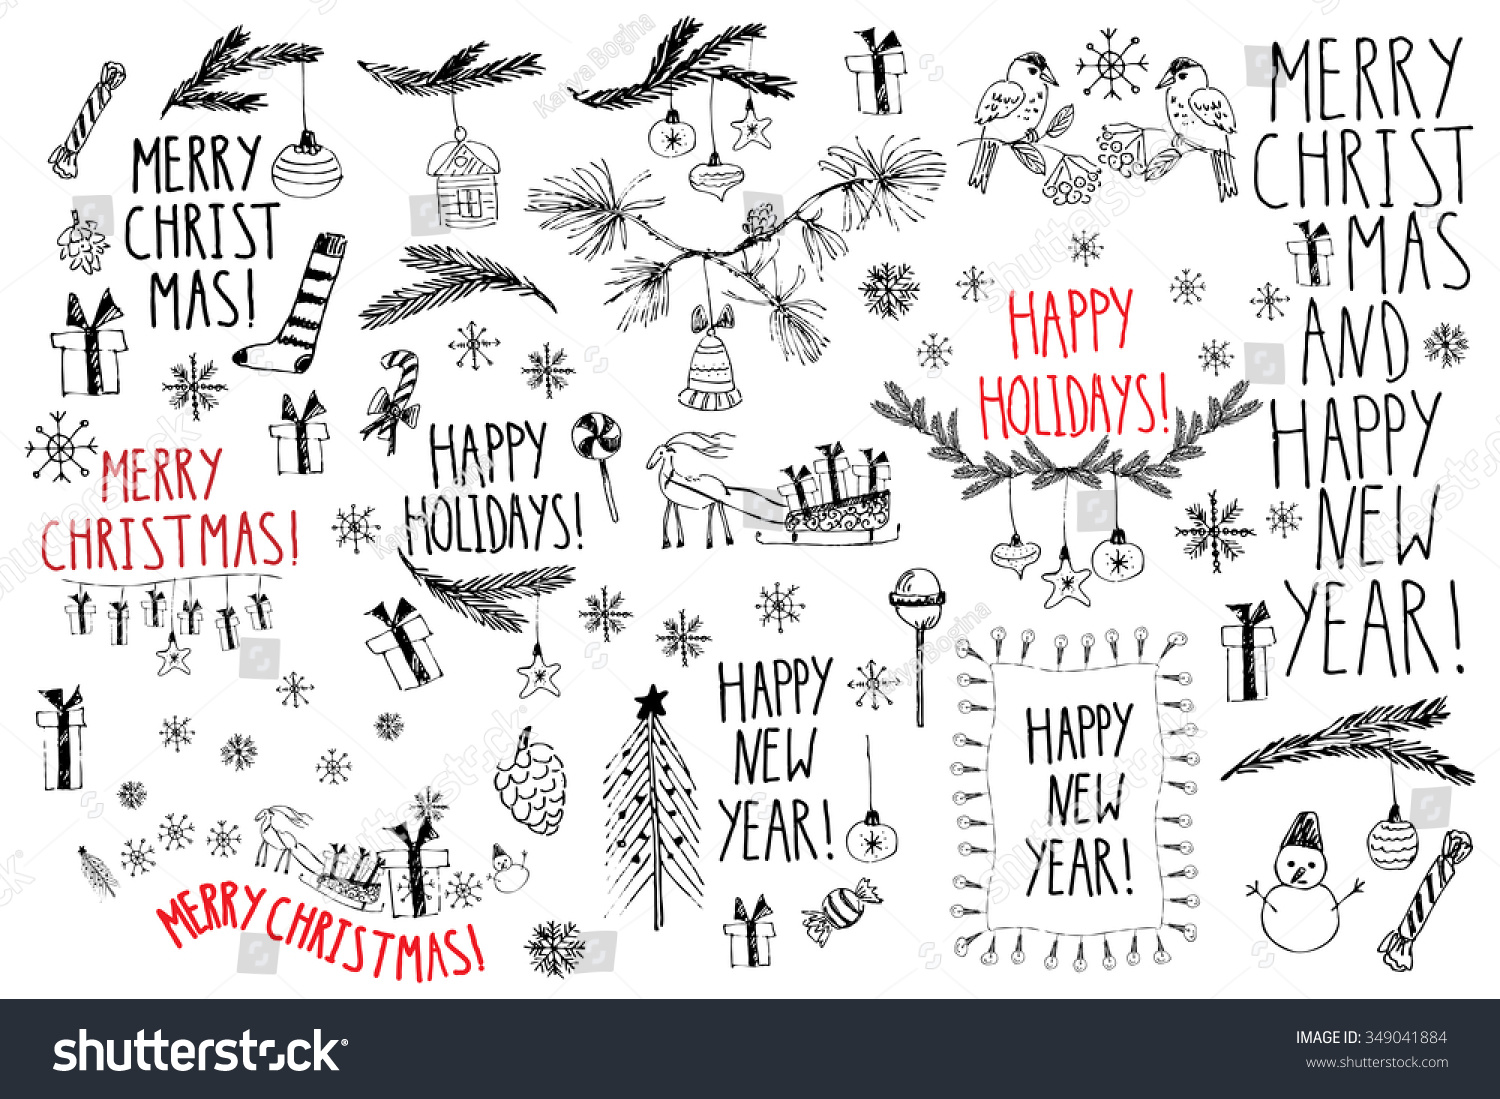 hand drawn doodle vector illustration christmas stock vector